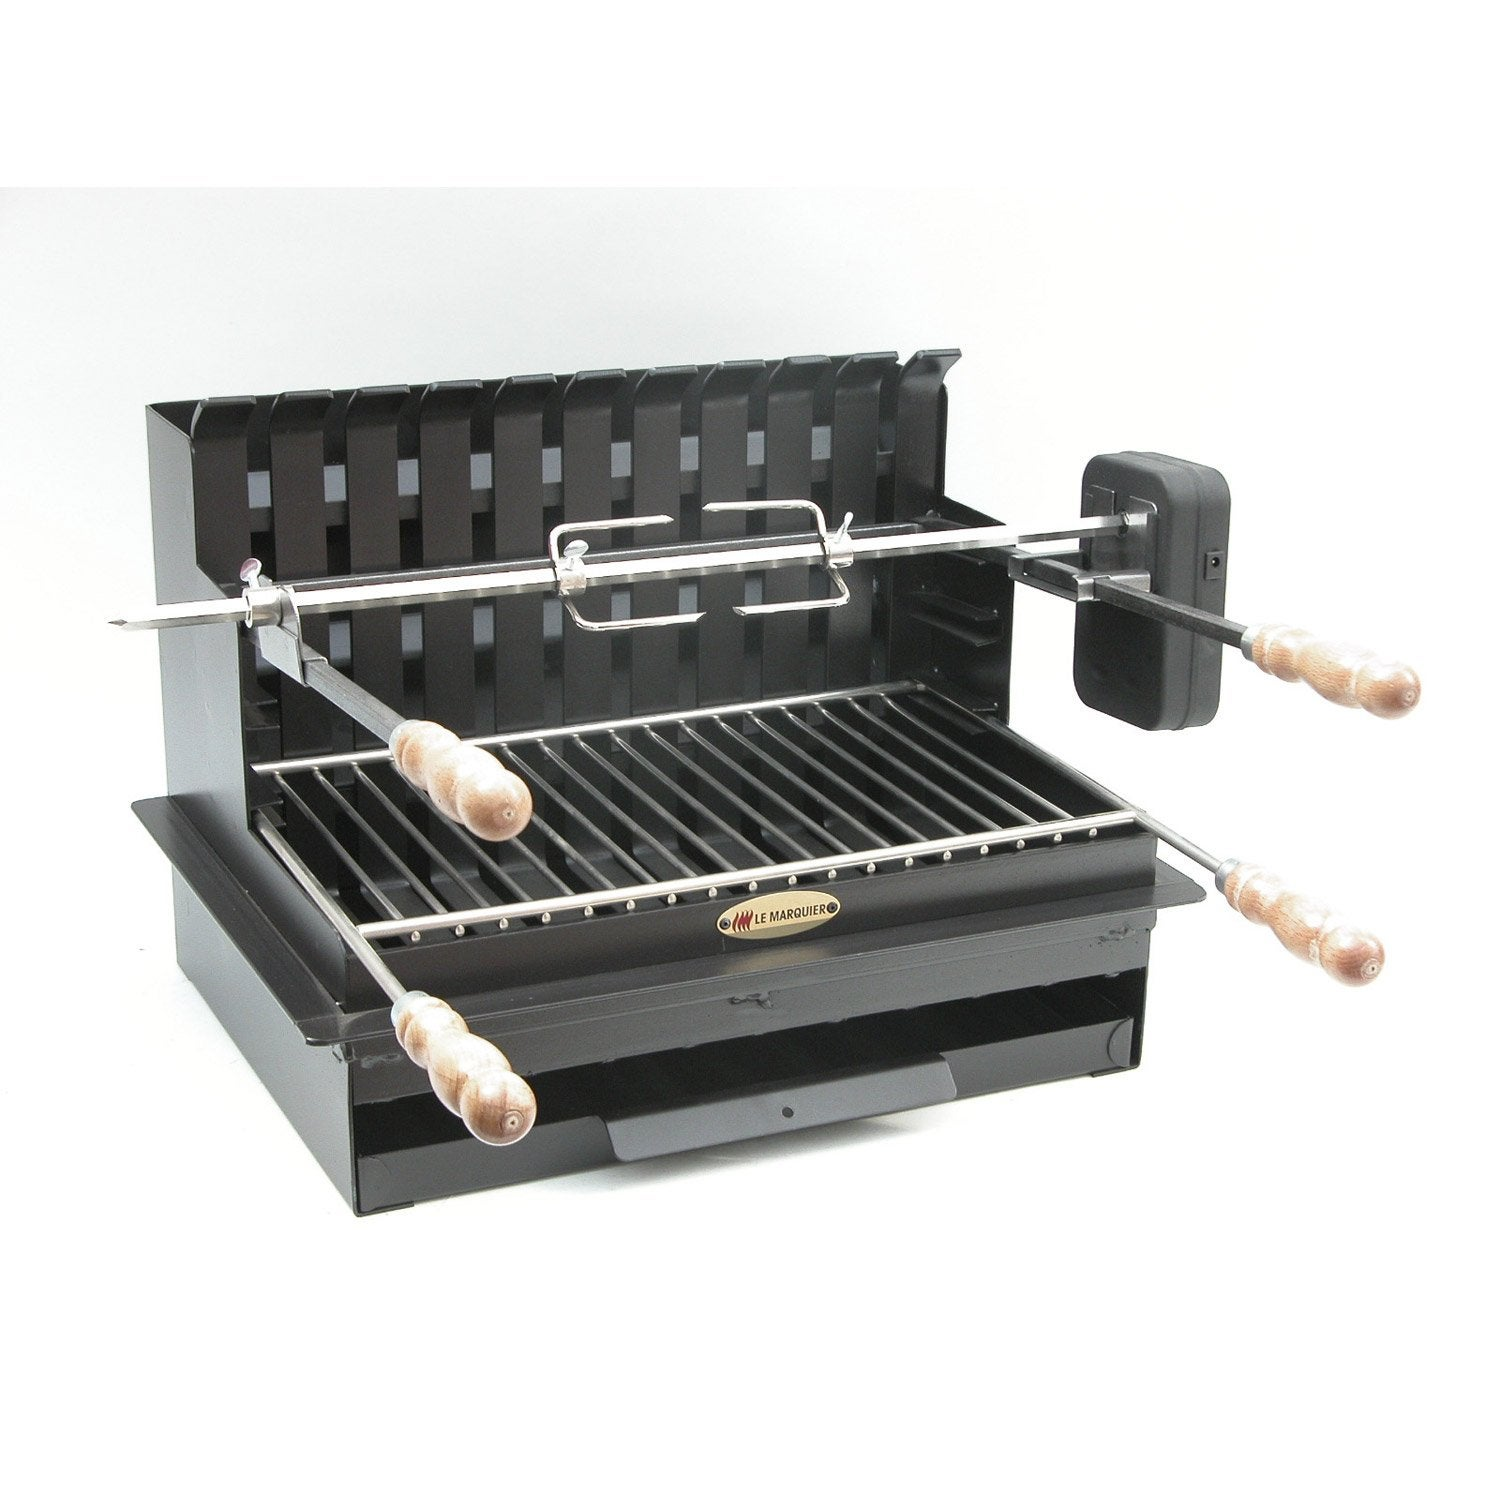 Barbecue Encastrable Leroy Merlin